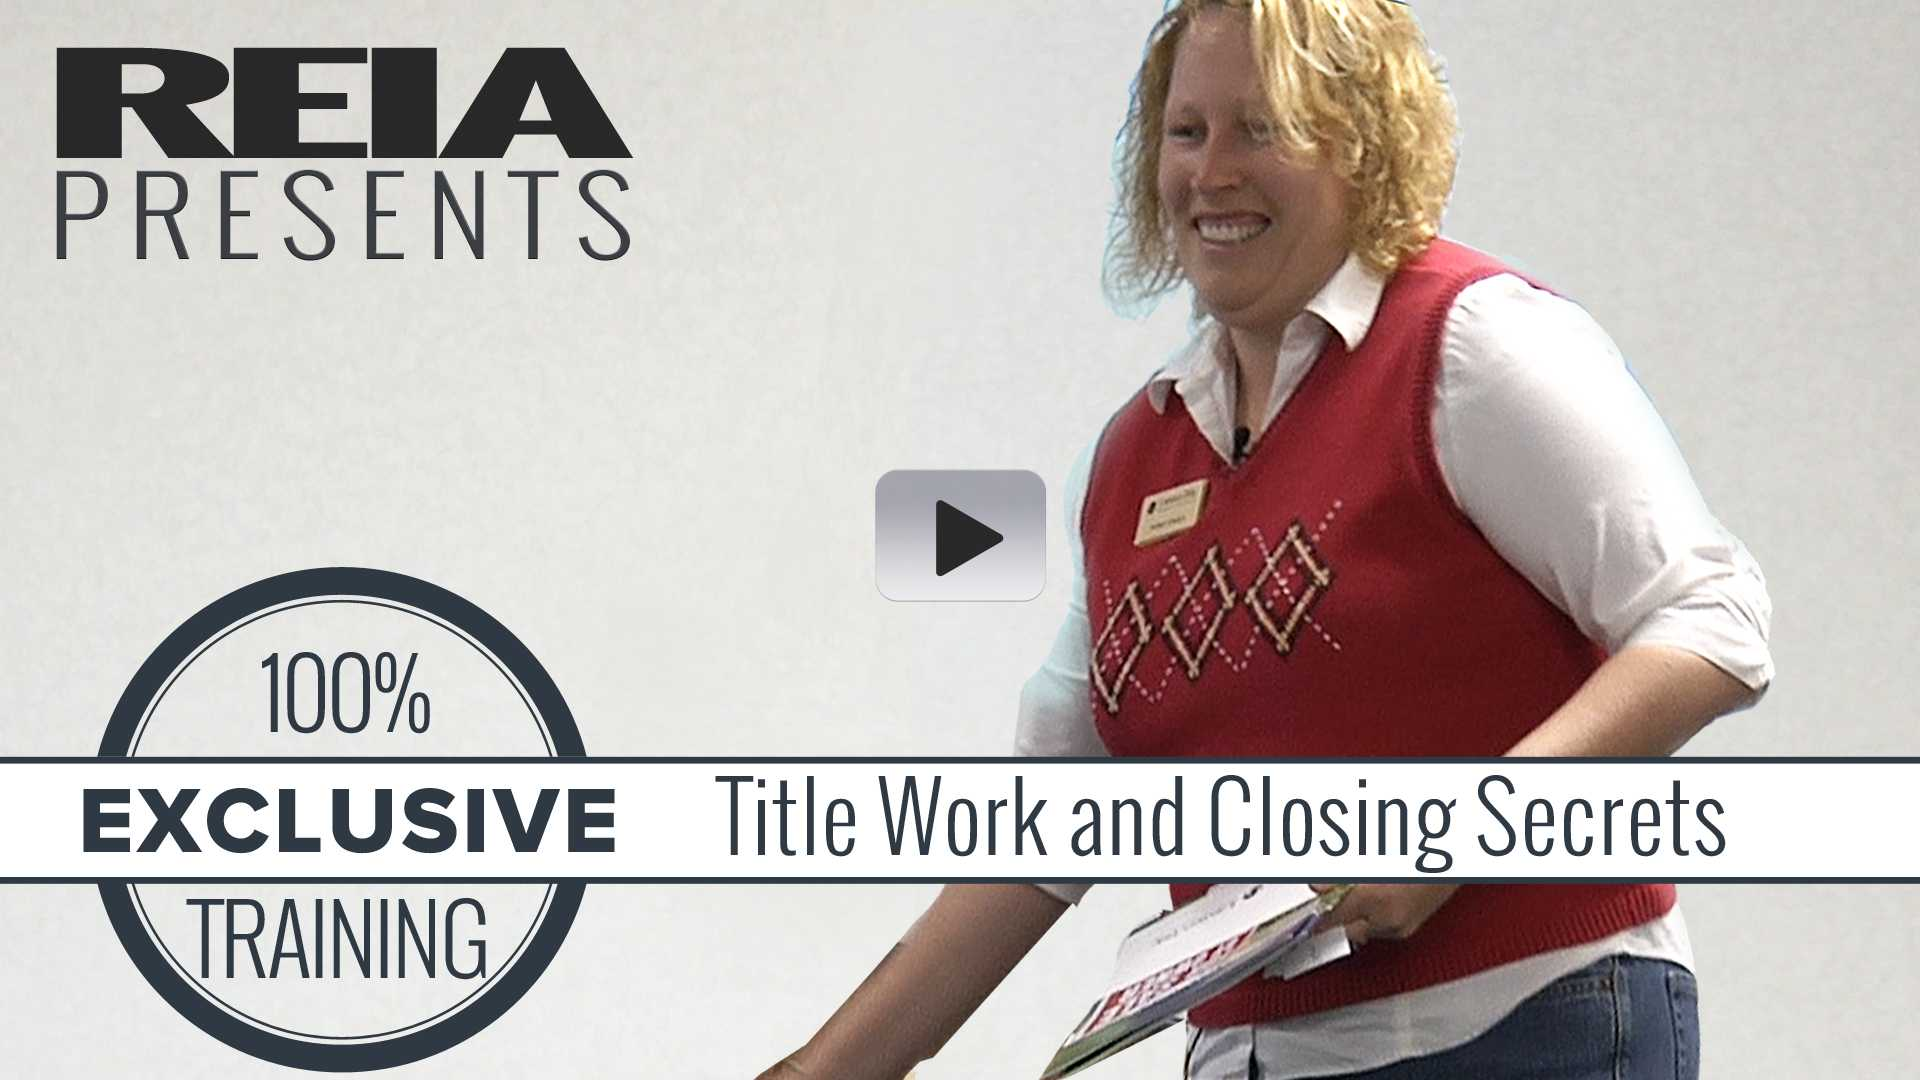 Fort Wayne Title Company expert explains closing expenses, title problems, deed explanations and the most important things investors must know about title and closing in Fort Wayne.